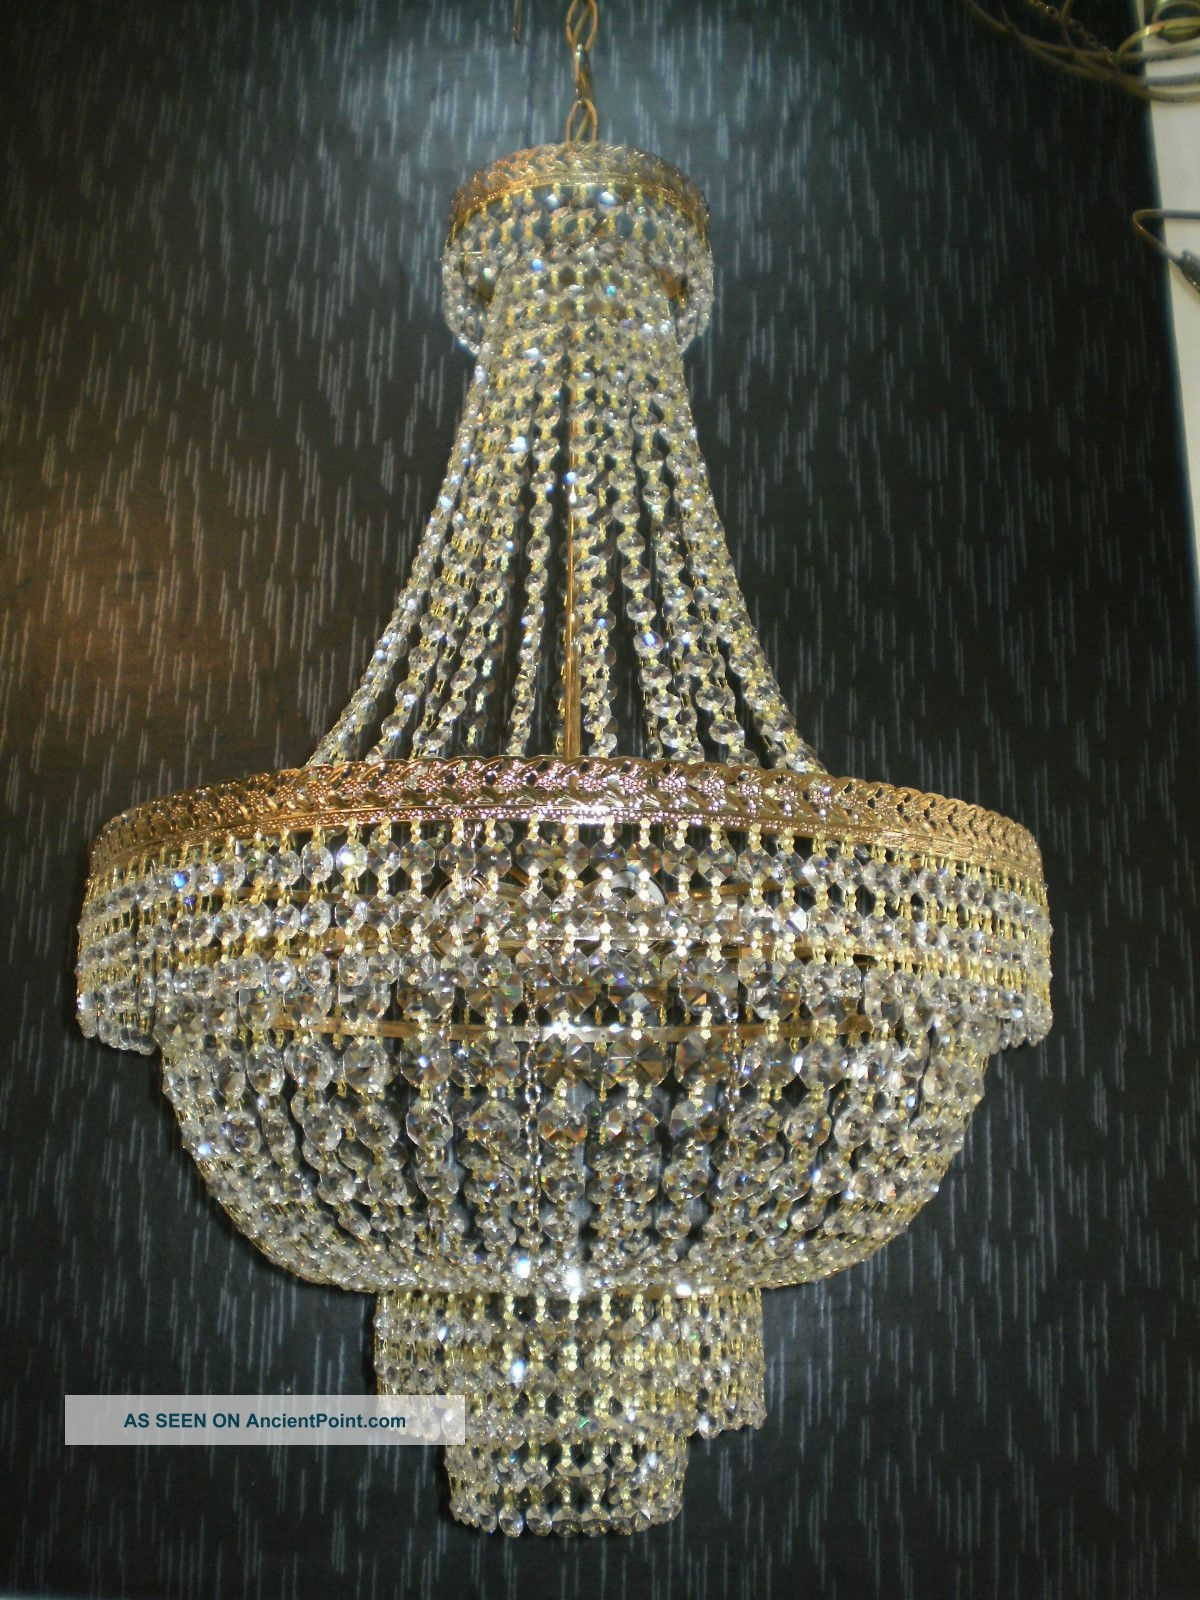 Modern Crystal Chandeliers Home Decor Within Large Crystal Chandeliers (Image 13 of 15)